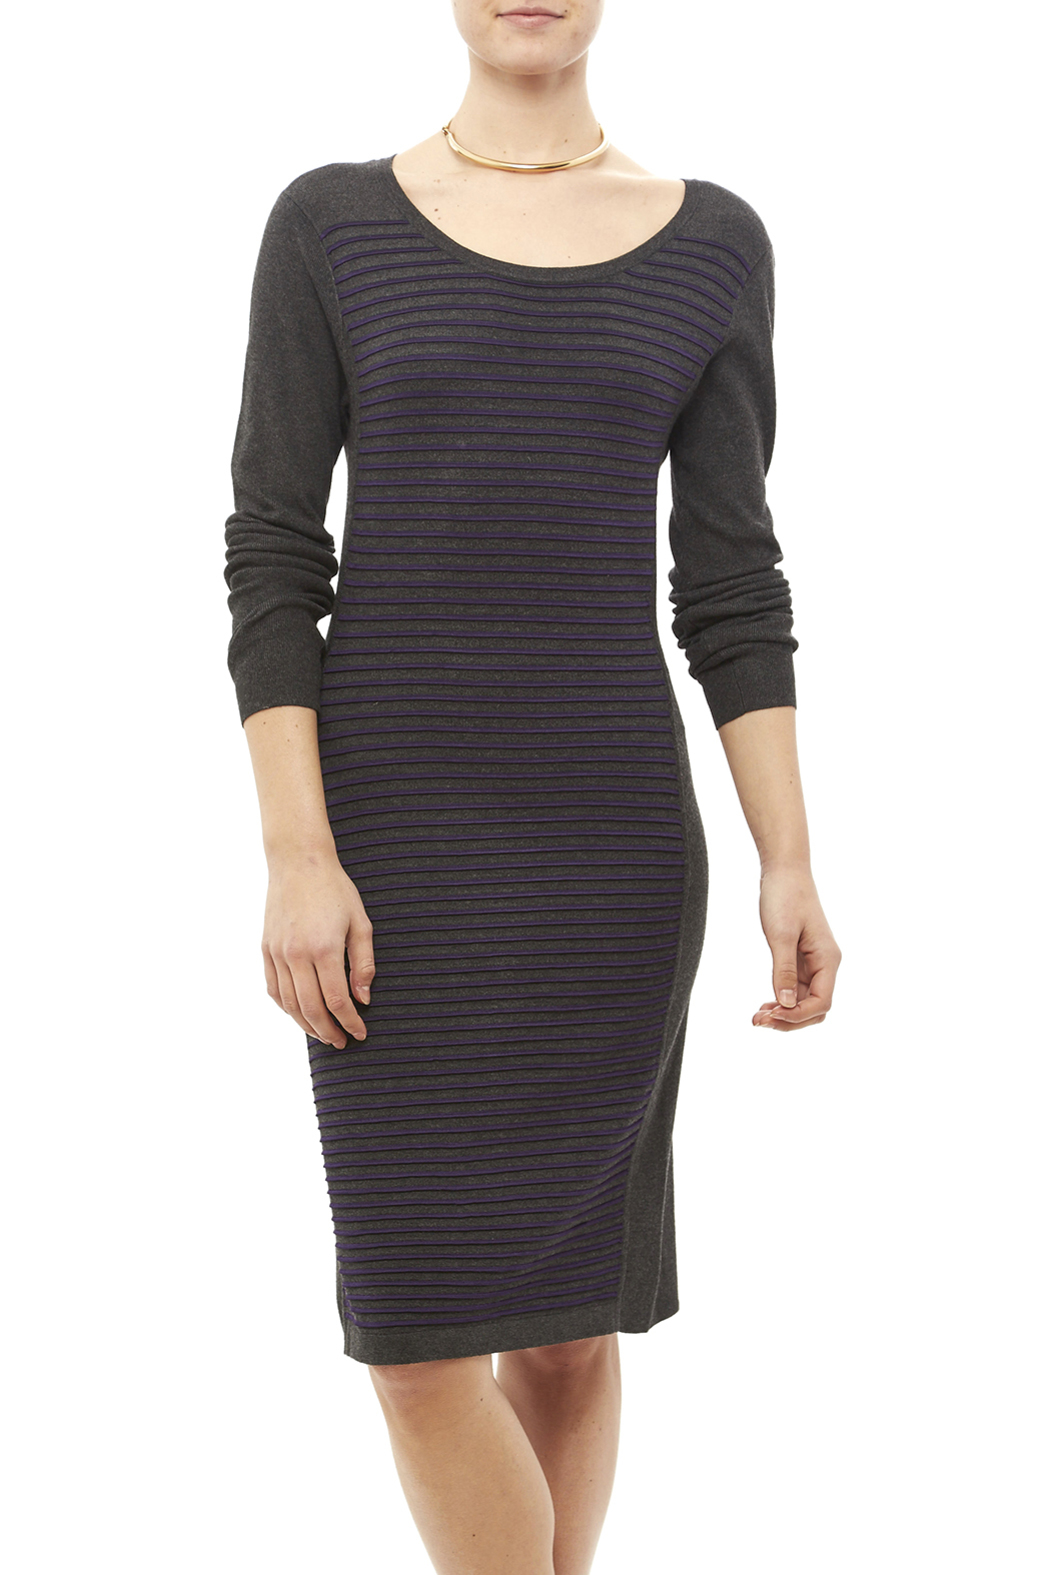 Tribal Gray Stripe Dress - Main Image